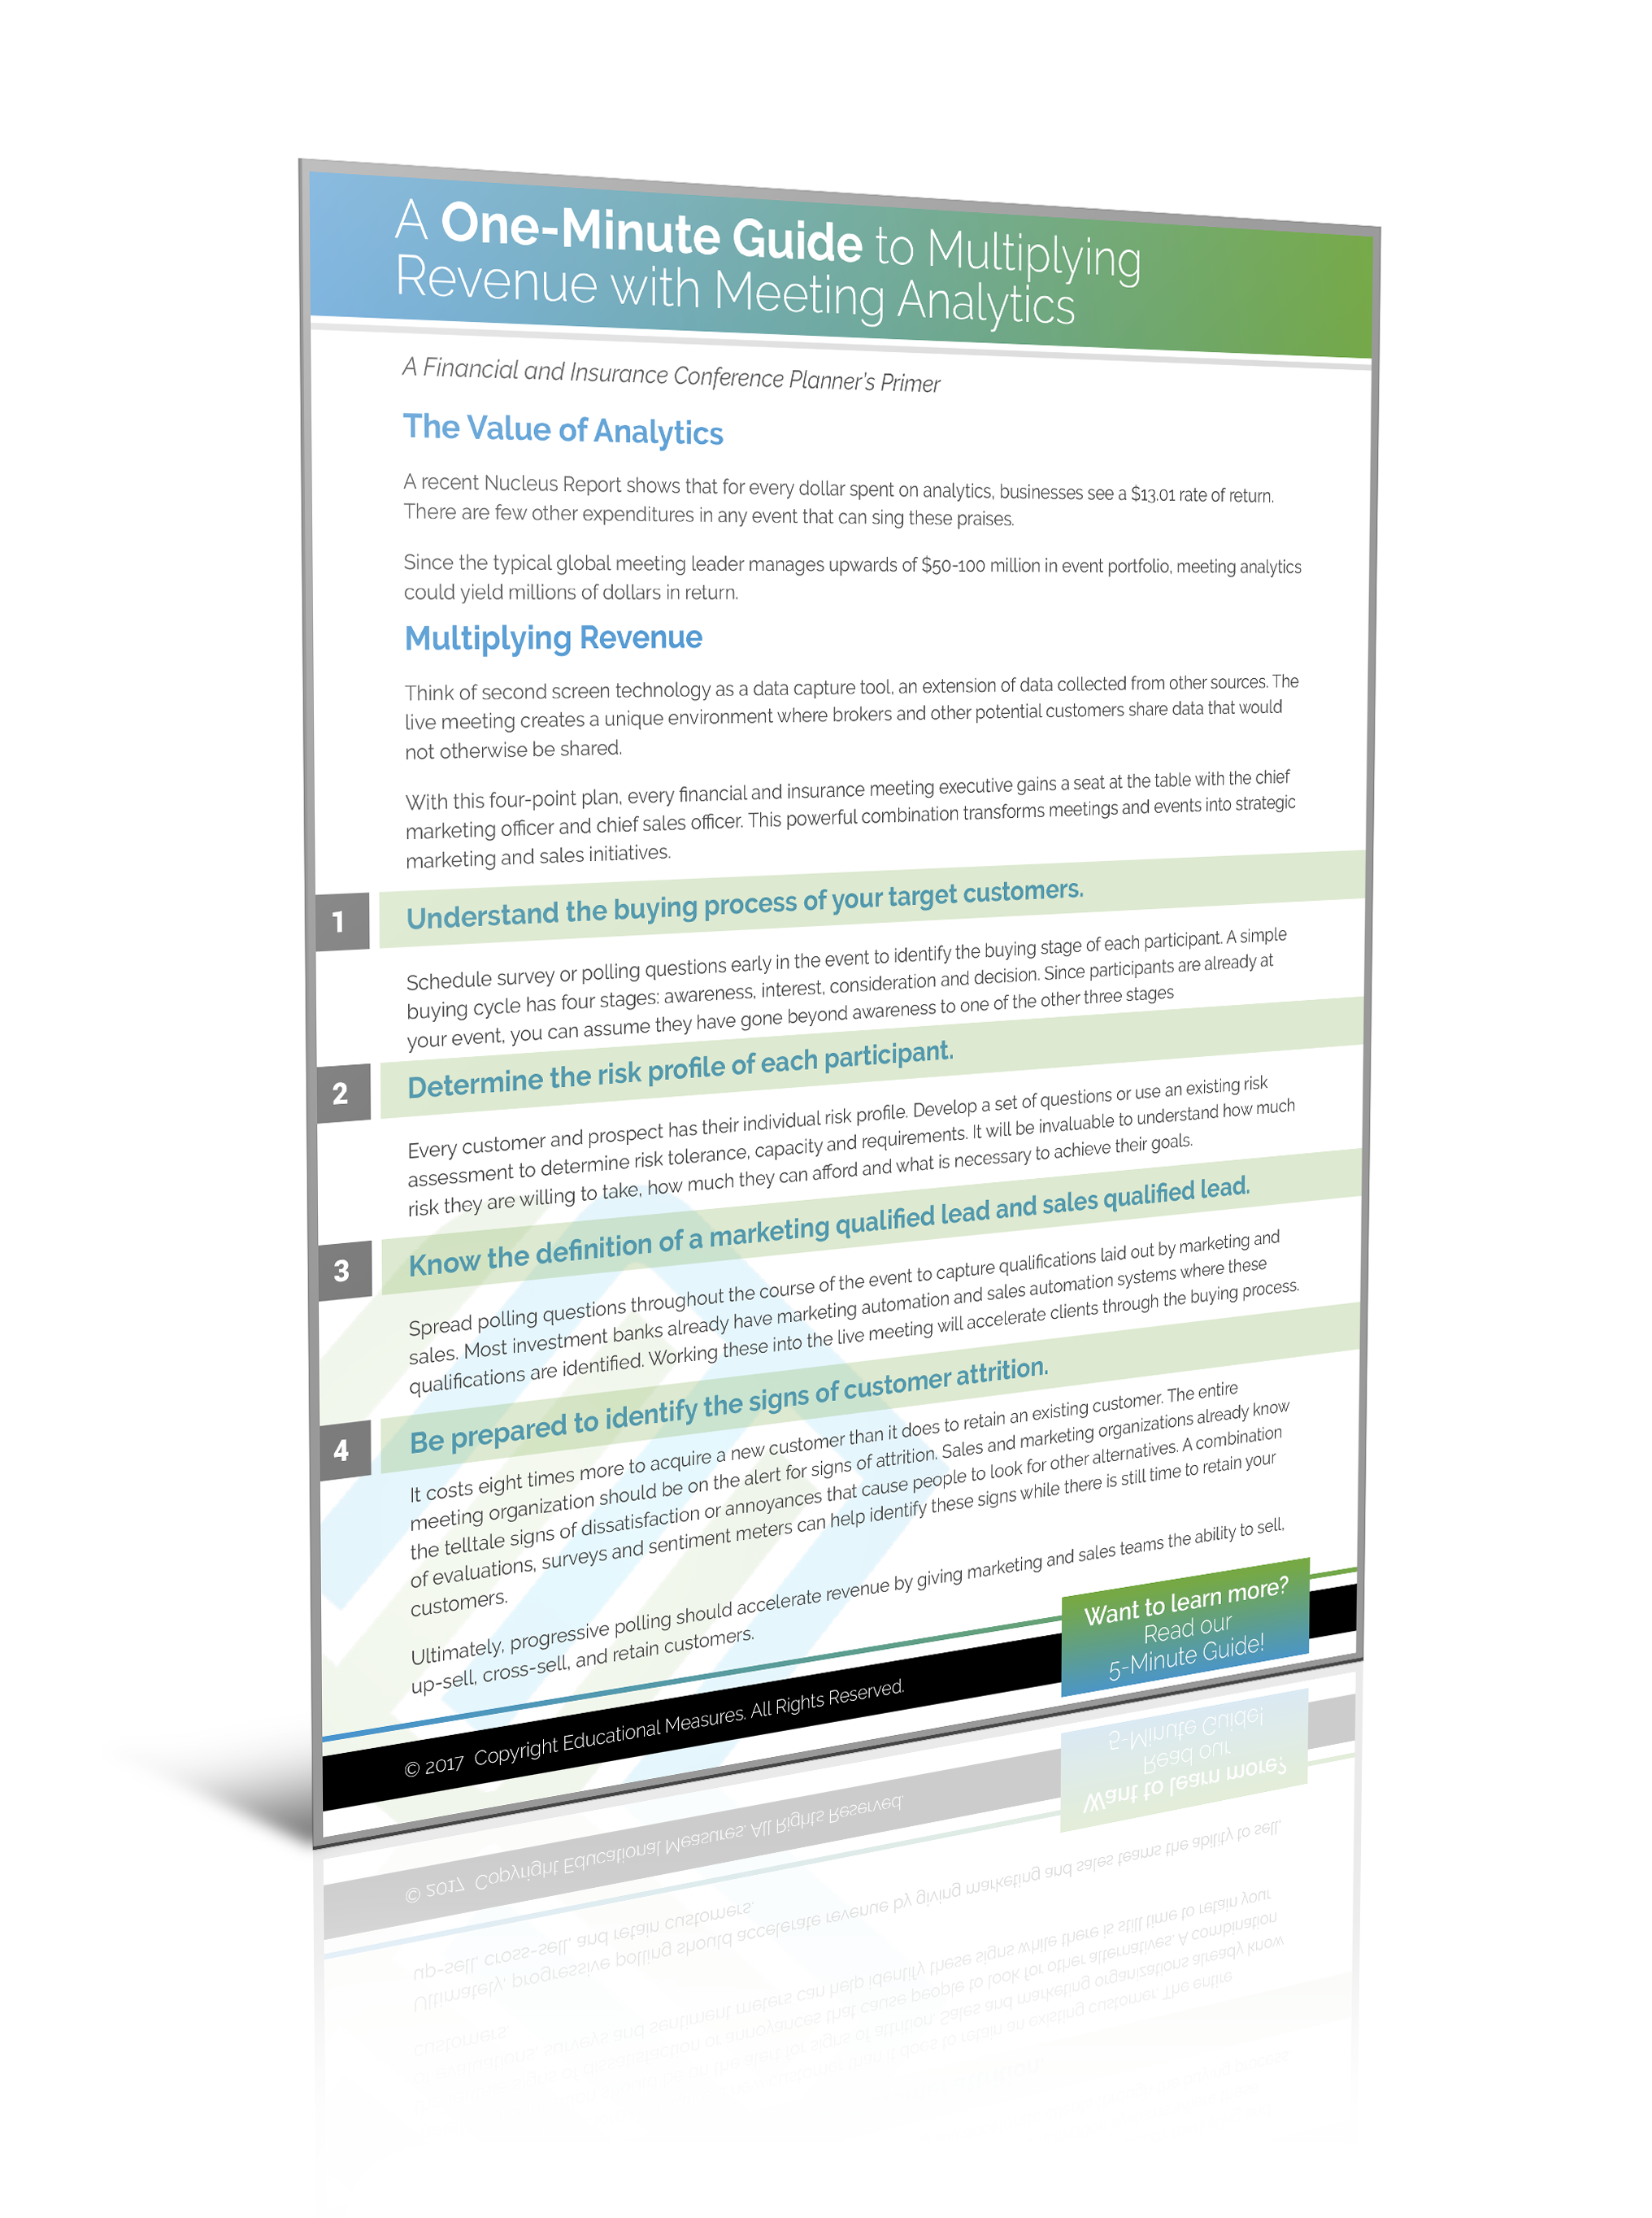 em-1-minute-guide-mult-revenue-meeting-analytics-large-FICP.png